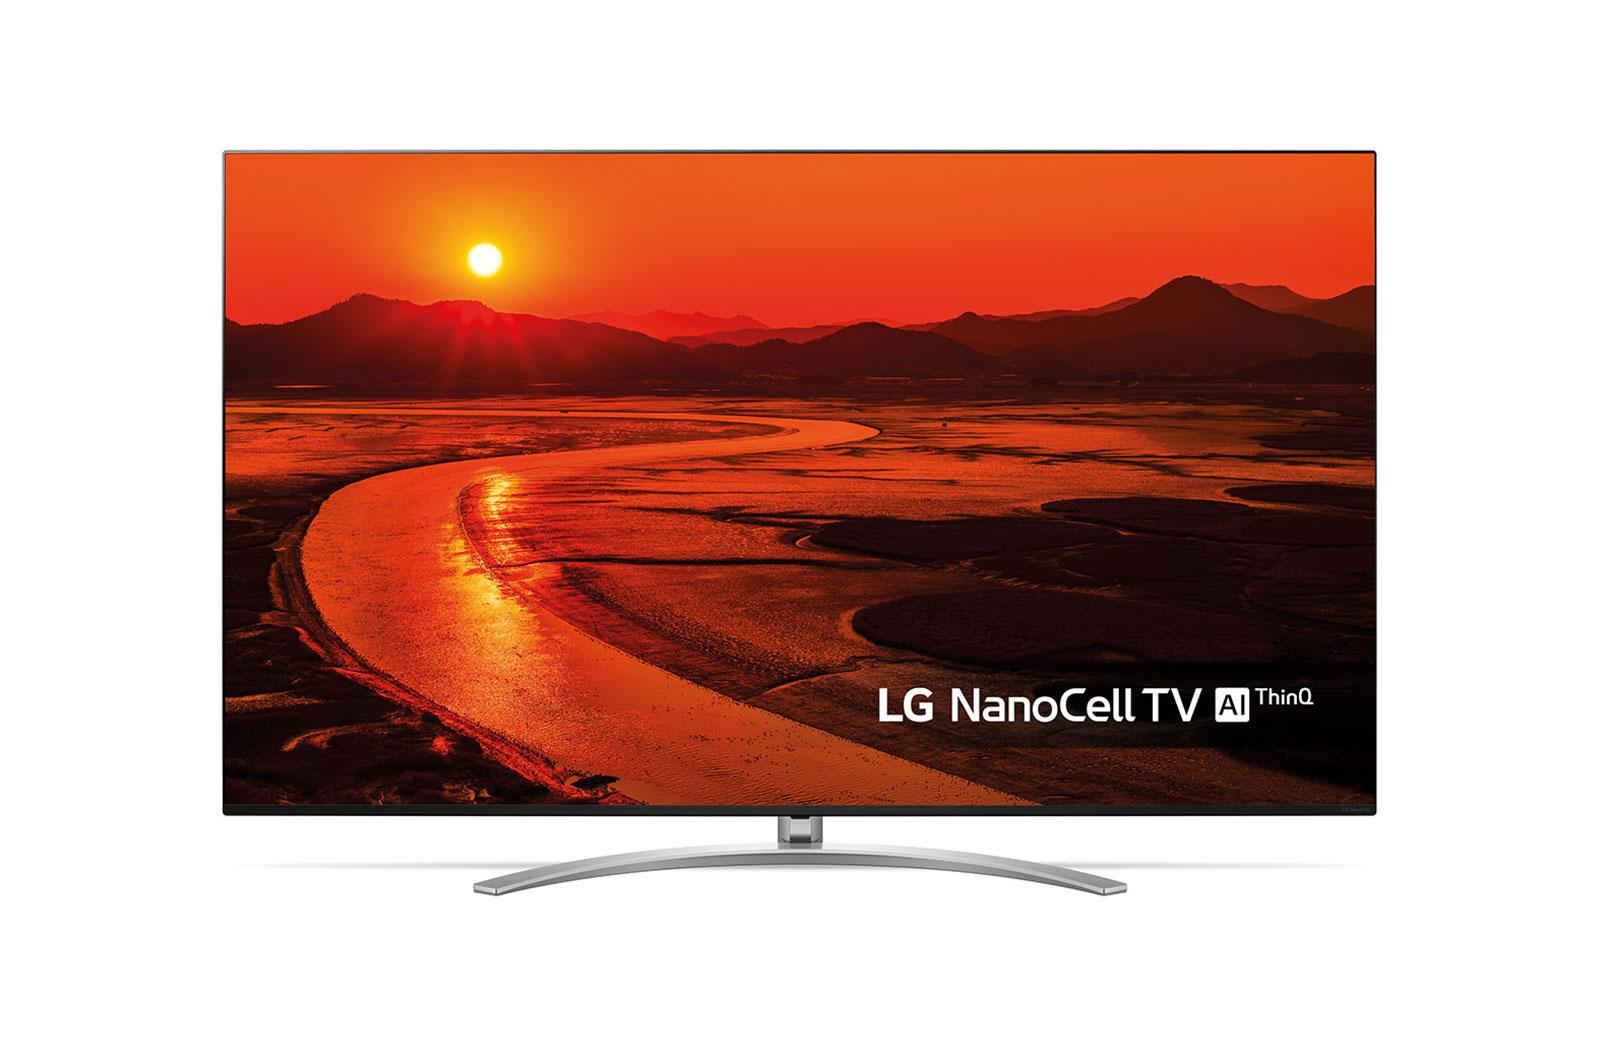 75 TV NanoCell Display Real 8K Cinema HDR Dolby Vision & Atmos - 75SM9900PLA main image